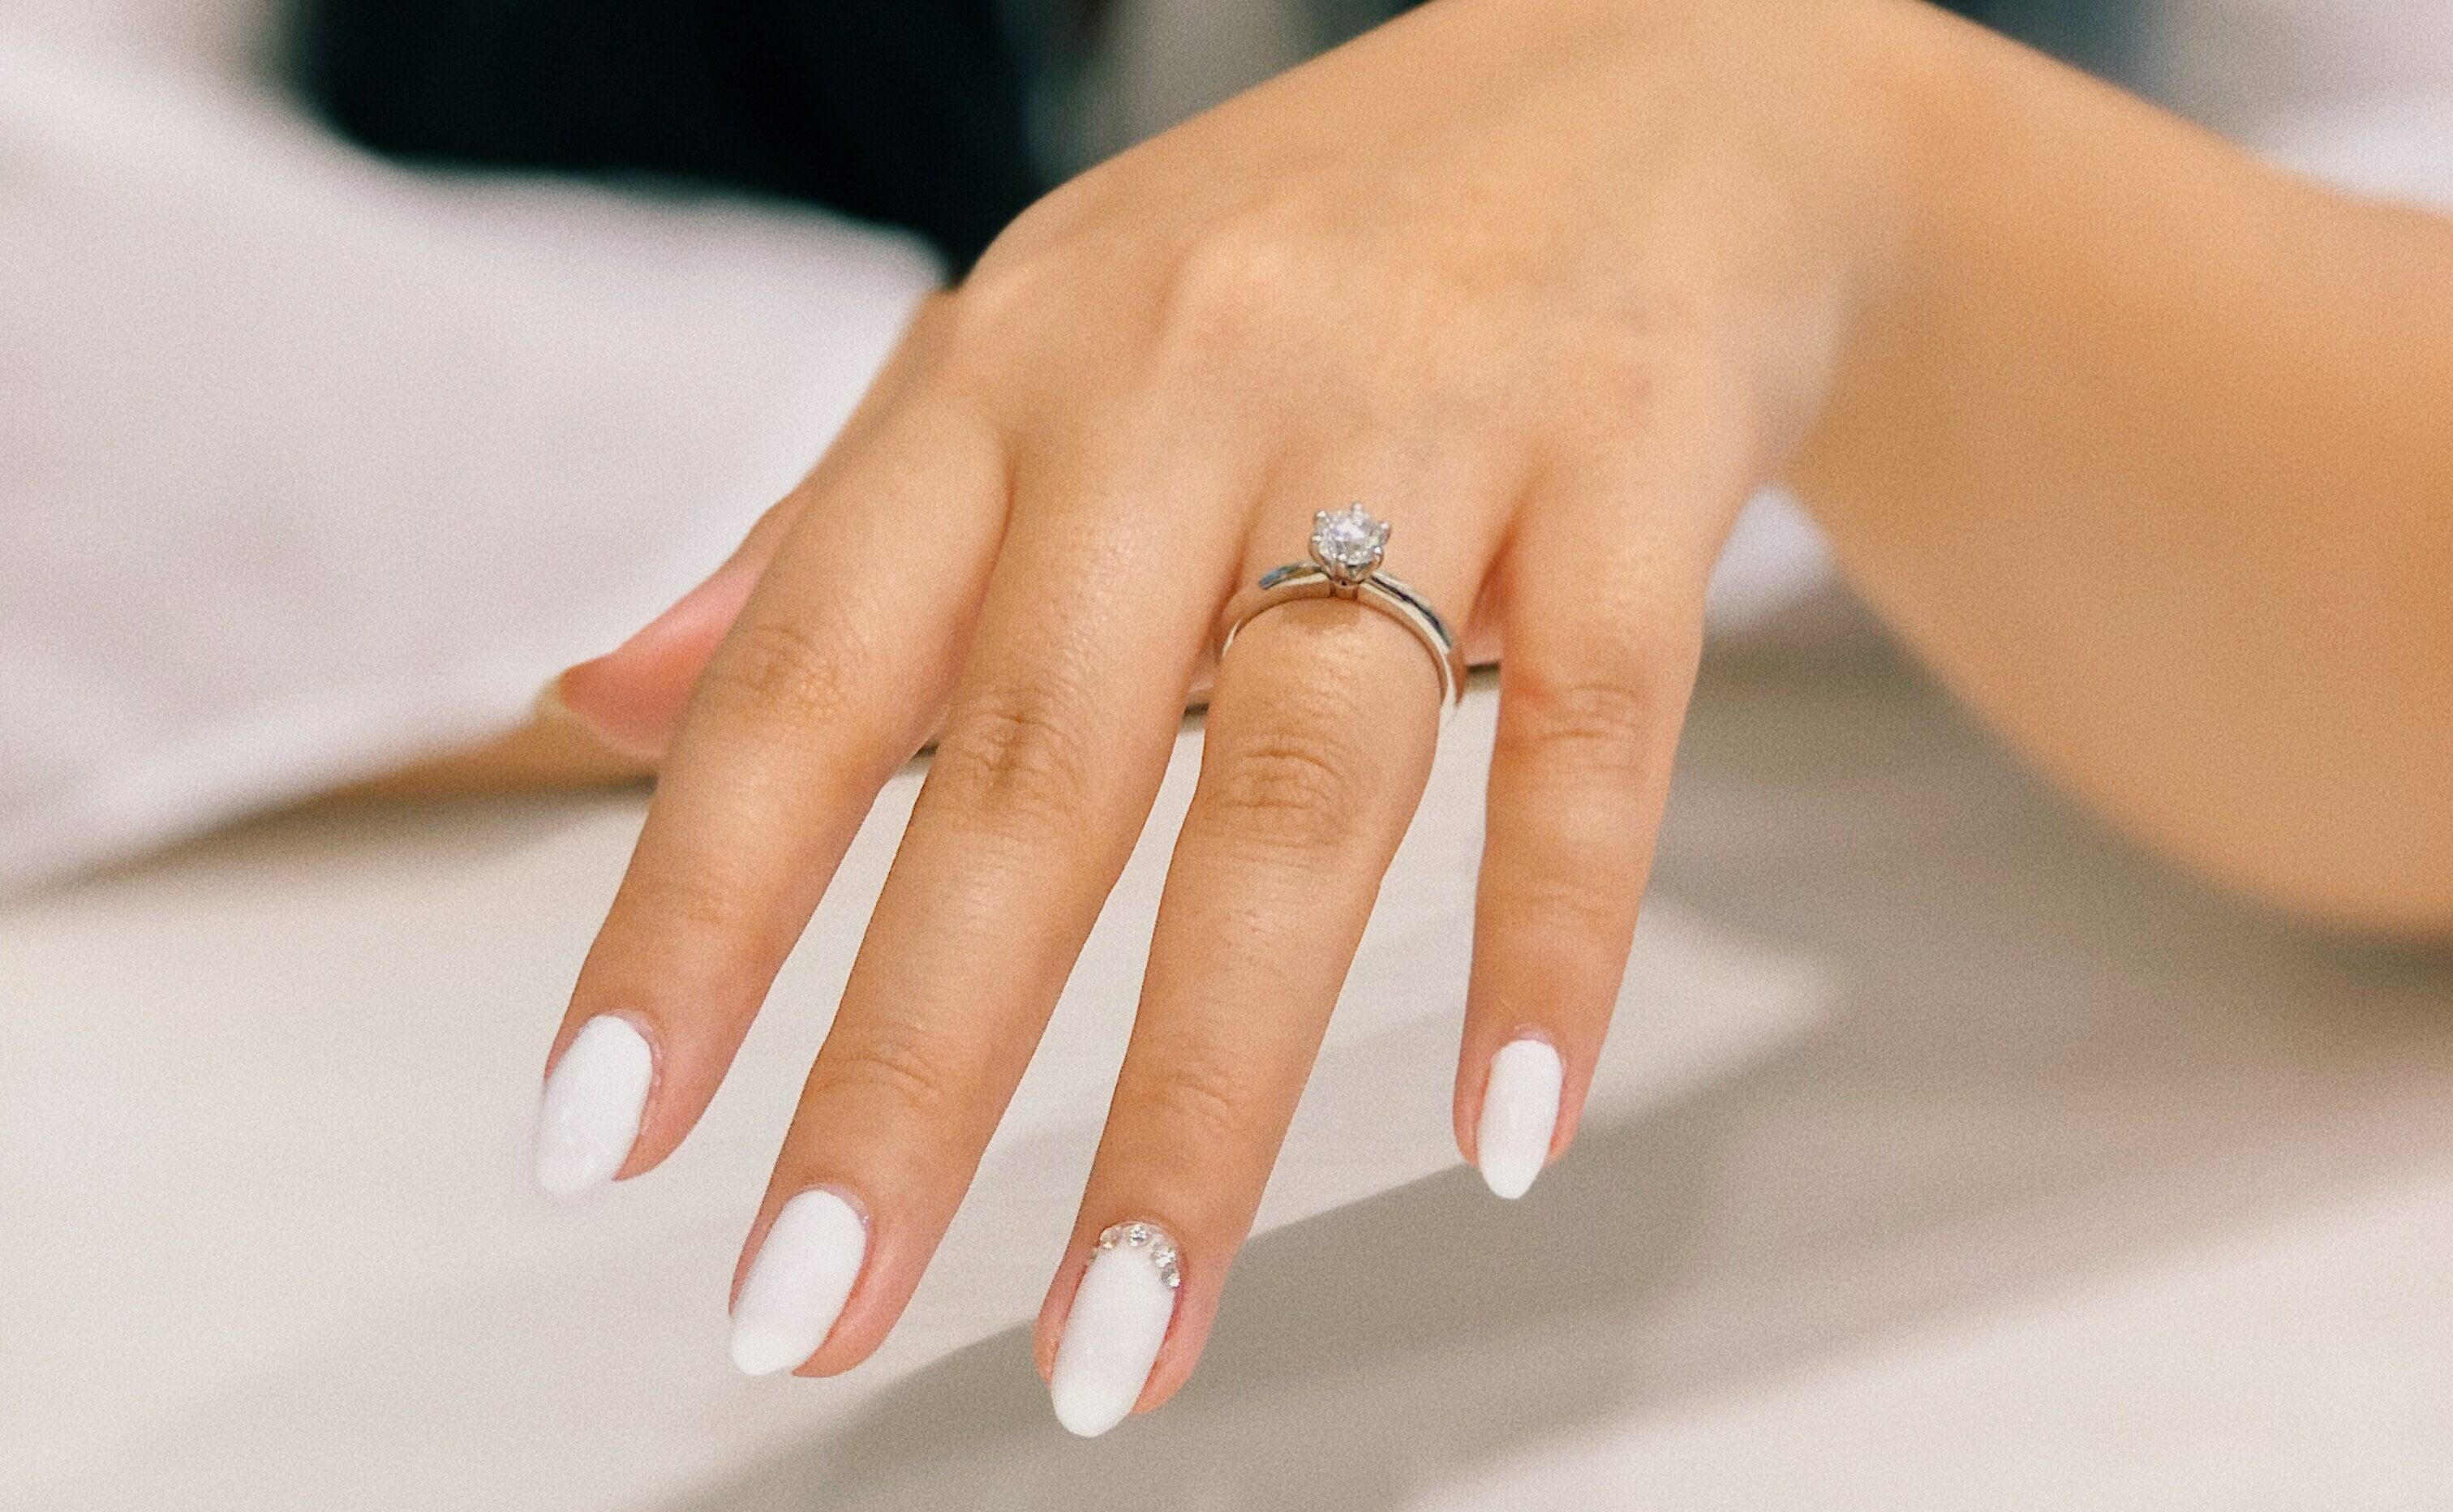 Smooth hand with fresh manicure and engagement ring